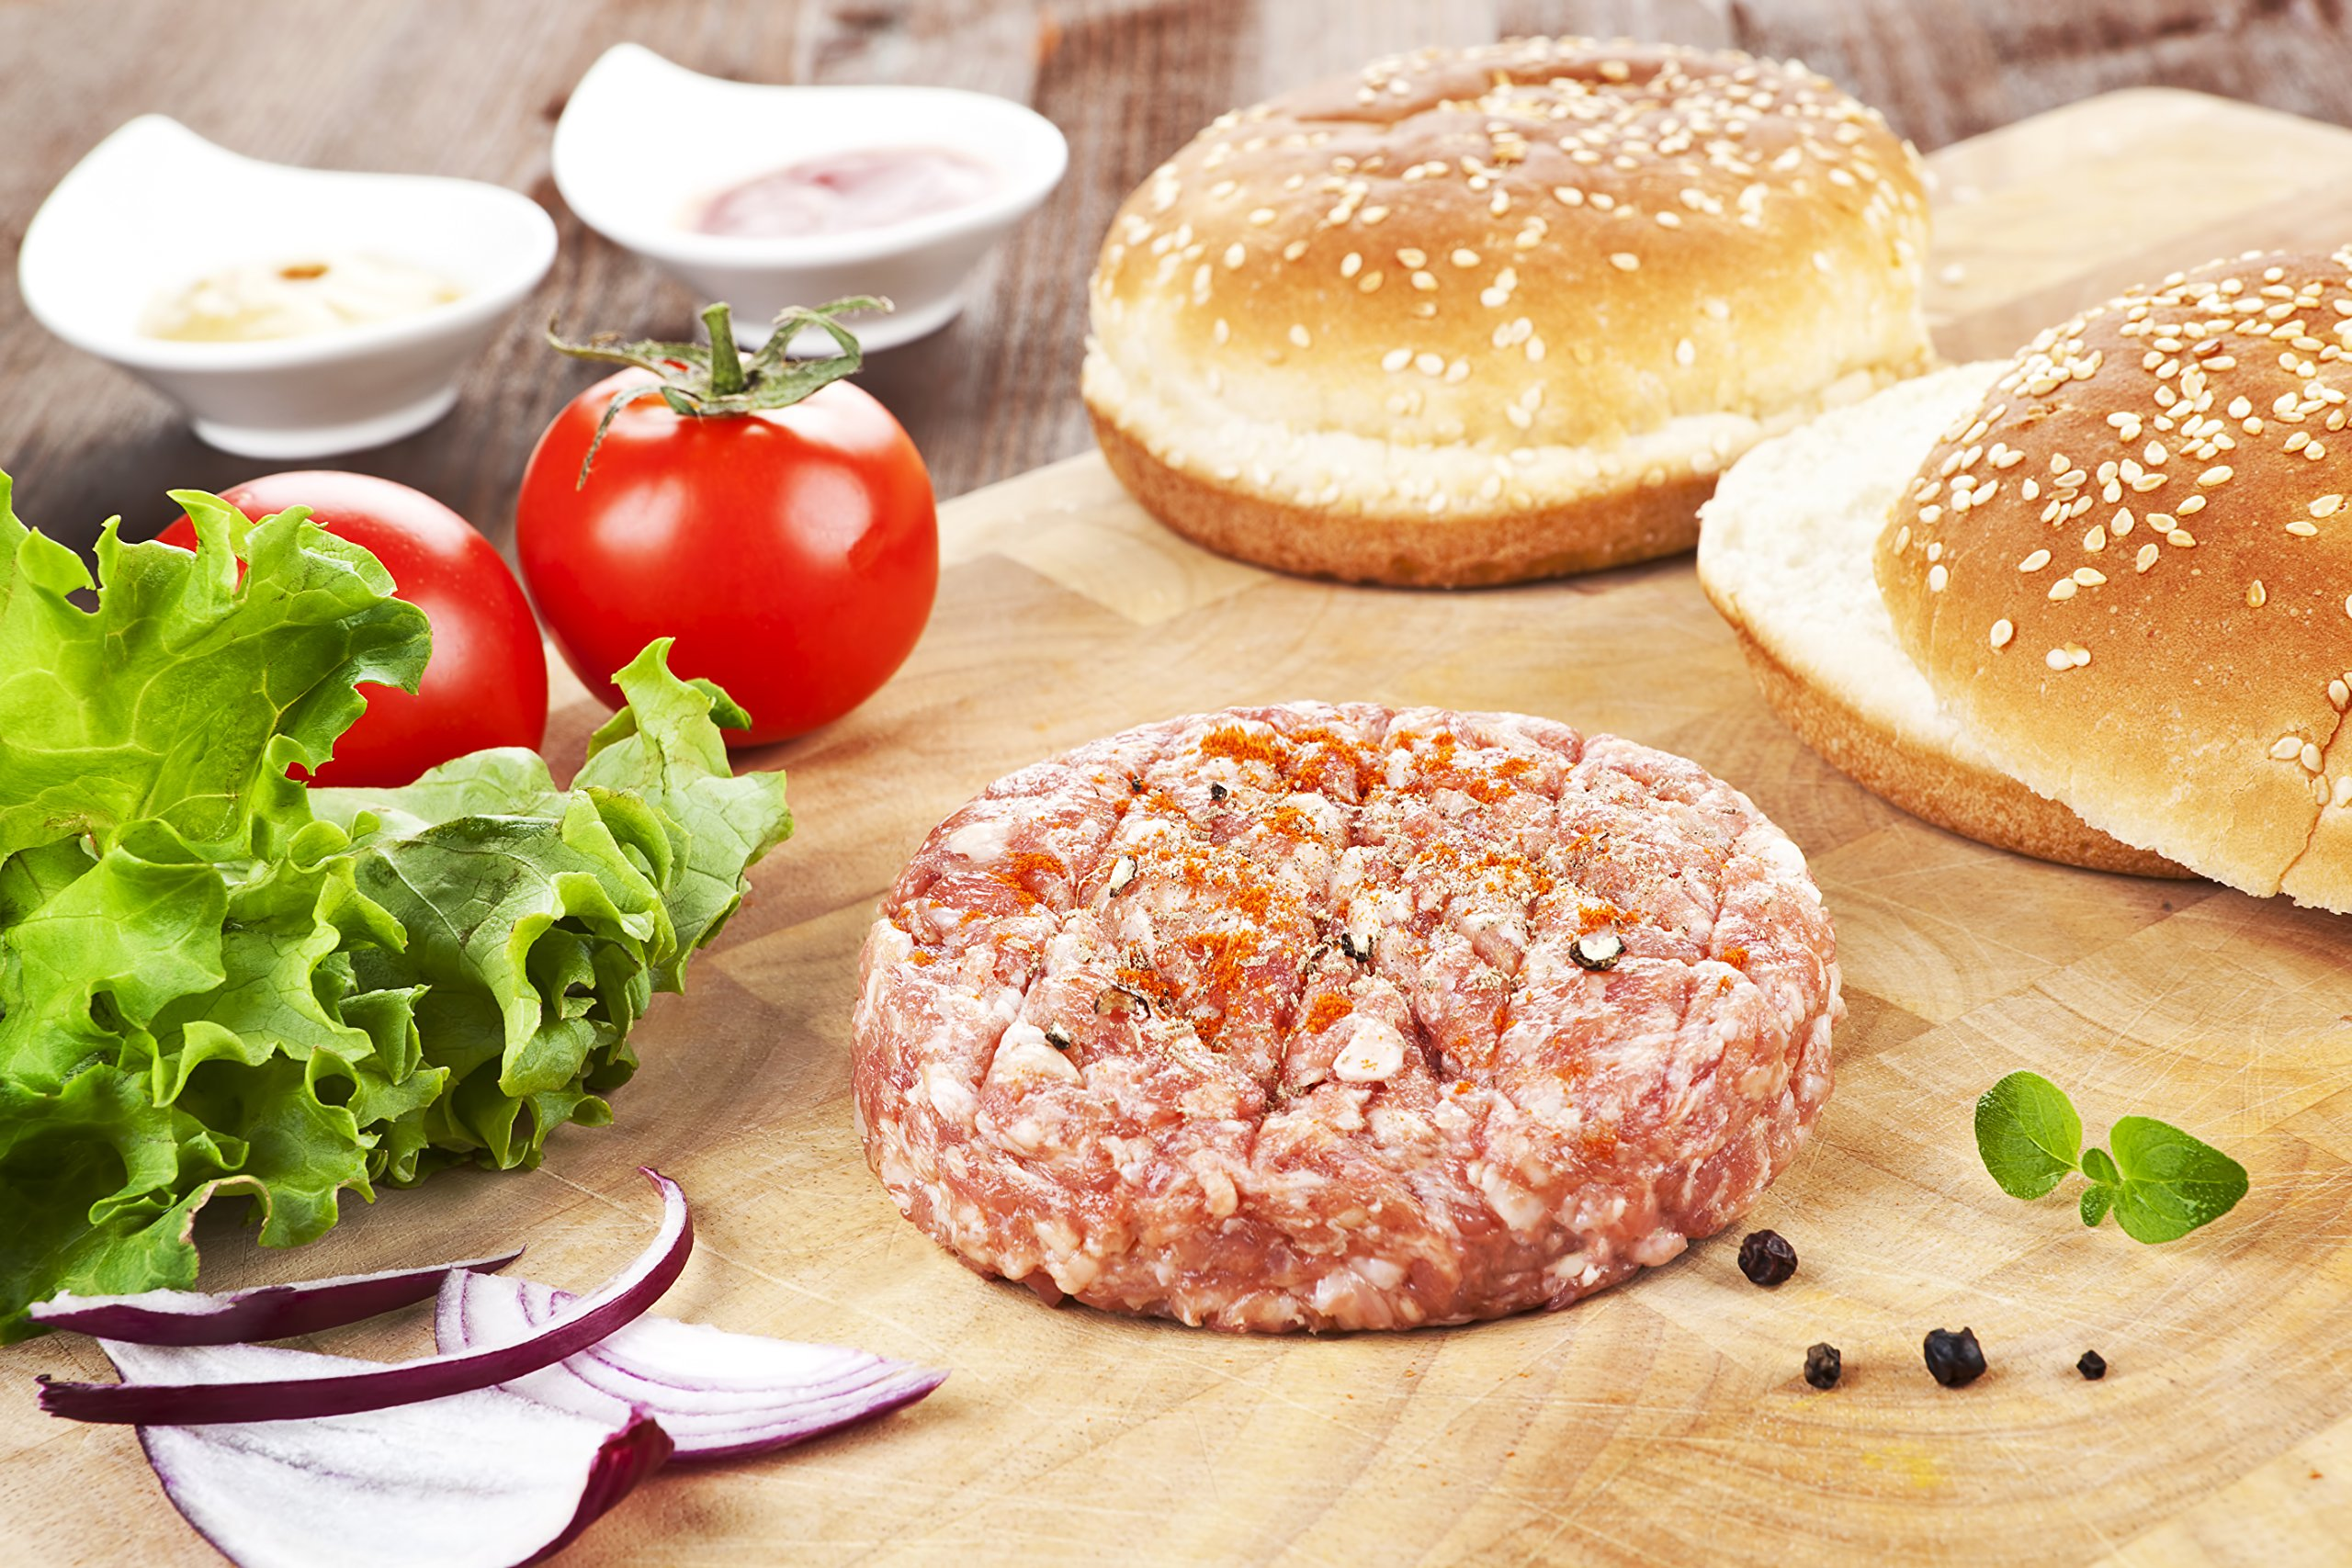 Organic Kosher Burger Sampler 4 Count of Each 10OZ Kobe Beef, Highland Lamb, Chicken And Turkey Burgers Perfect for any BBQ Grill Occasion by Aarons Gourmet